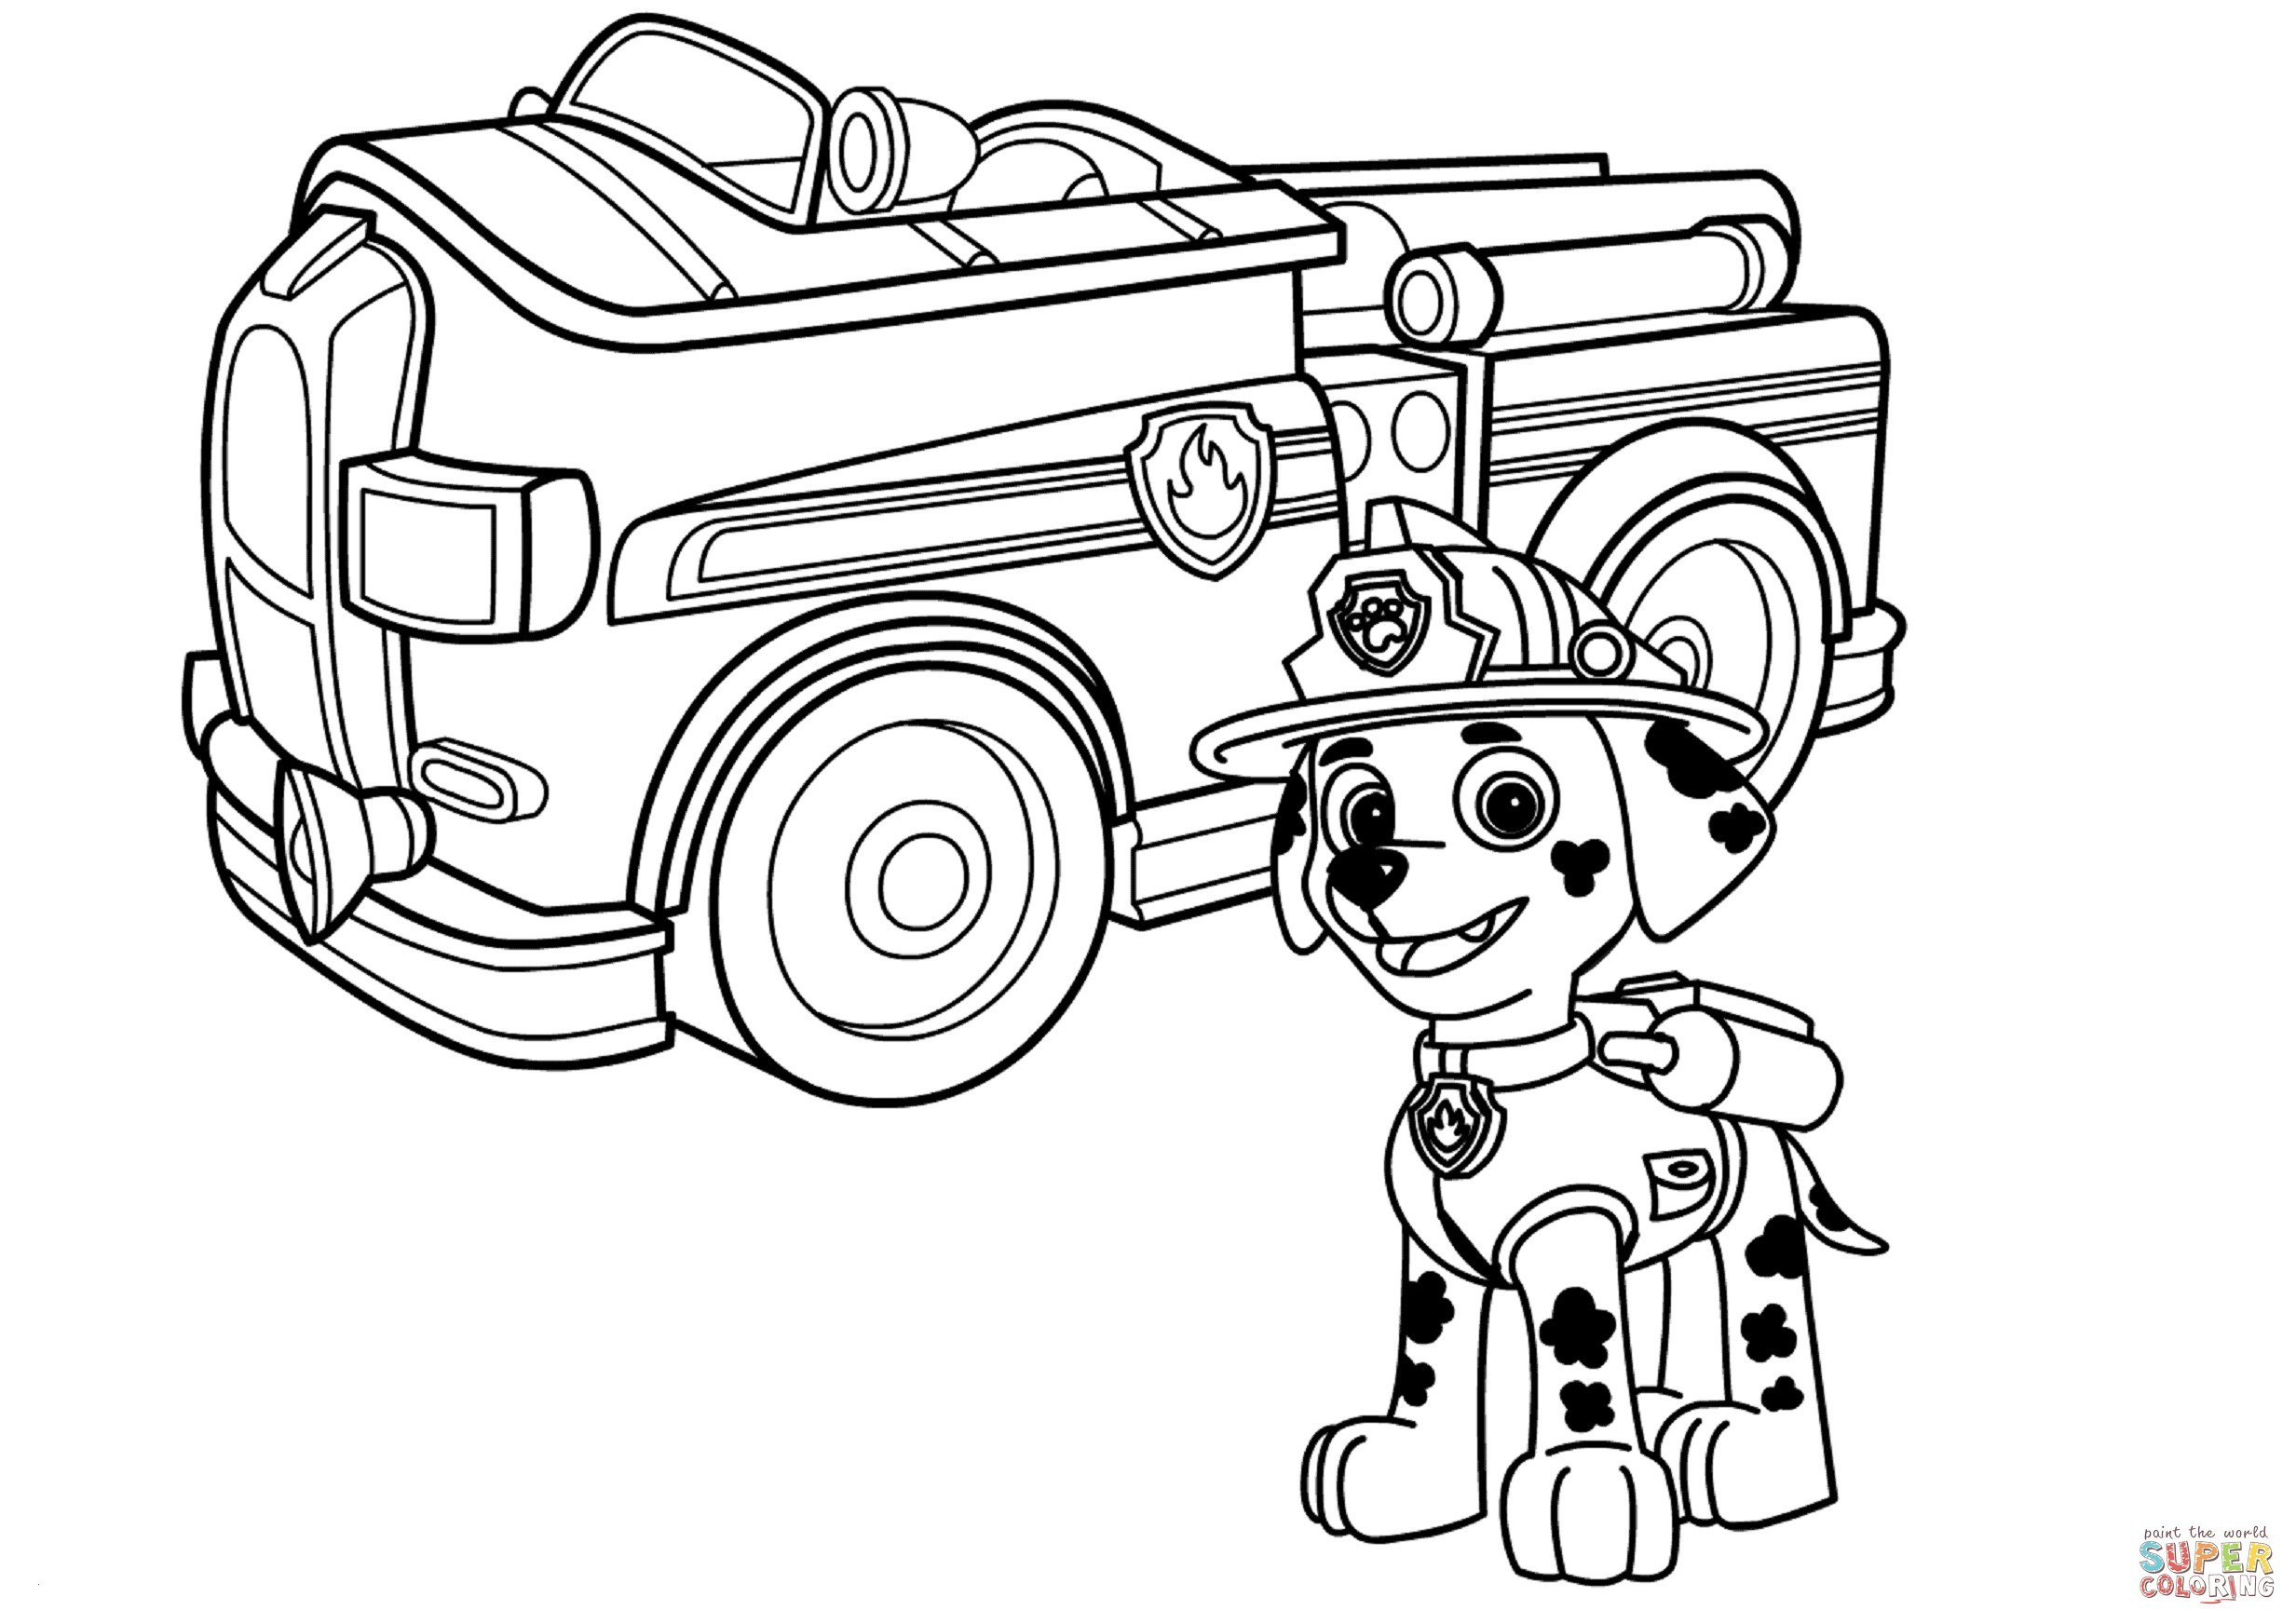 Paw Patrol Rocky Ausmalbilder Frisch Inspirational Marshall Paw Patrol Coloring Page Coloring Pages Luxus Bilder